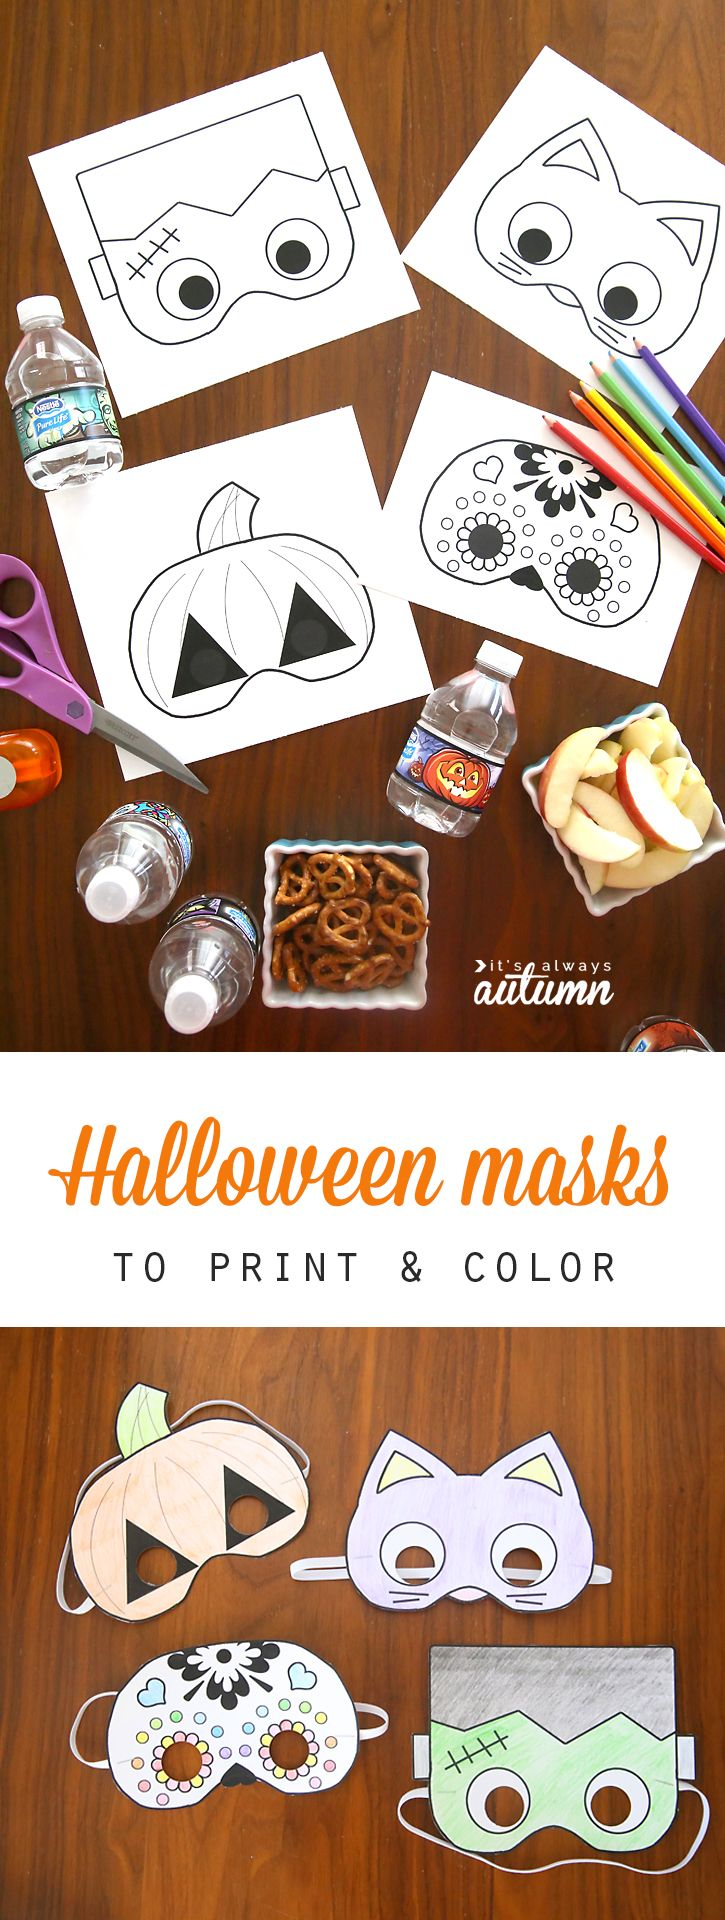 halloween masks to print and color - Kids Halloween Masks